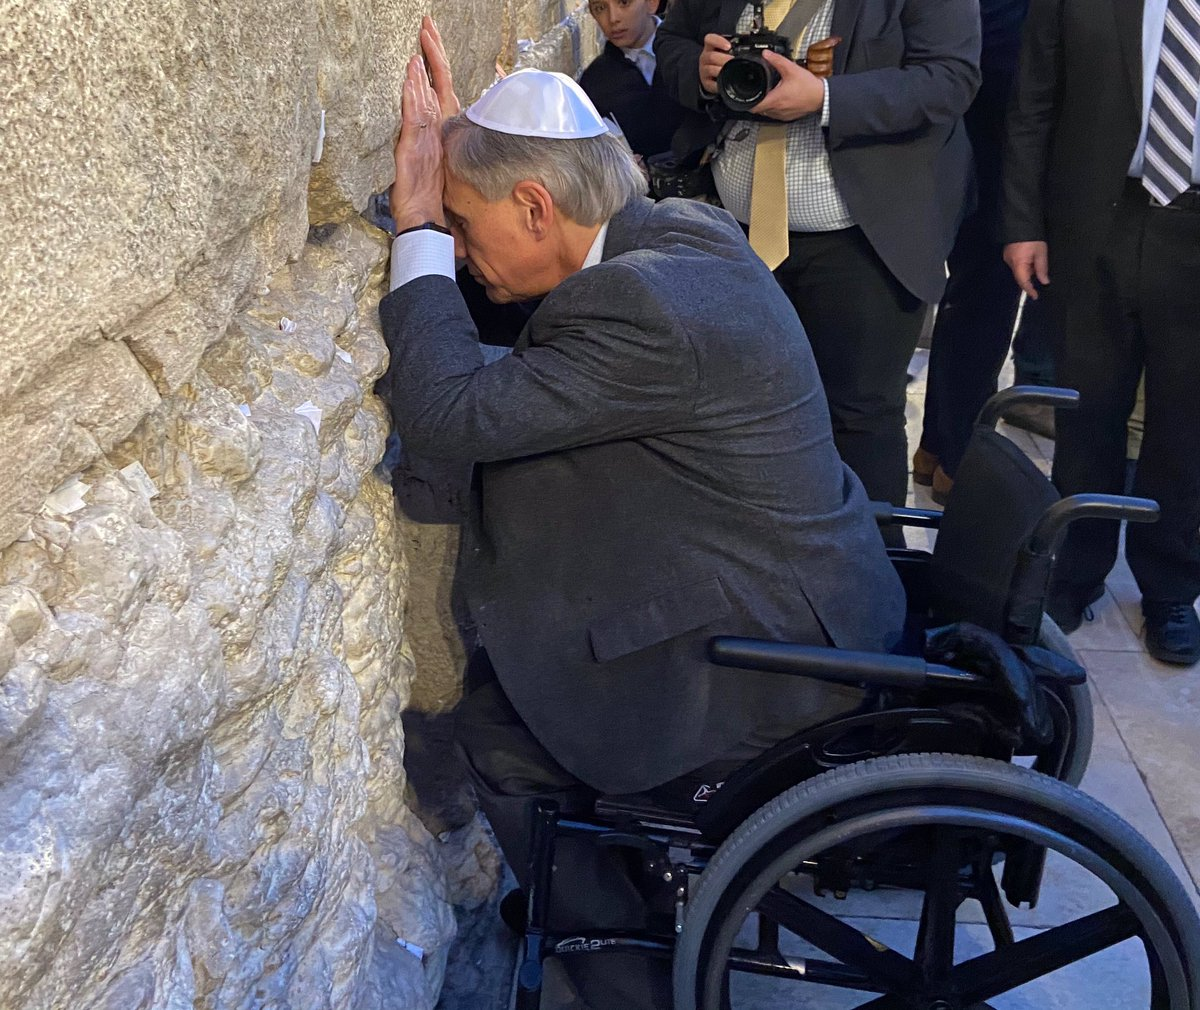 Today I prayed at the Western Wall in Jerusalem that God will continue to bless Israel and that God continue to strengthen the bond between Texas and Israel. May peace and prosperity continue to bless our two peoples.